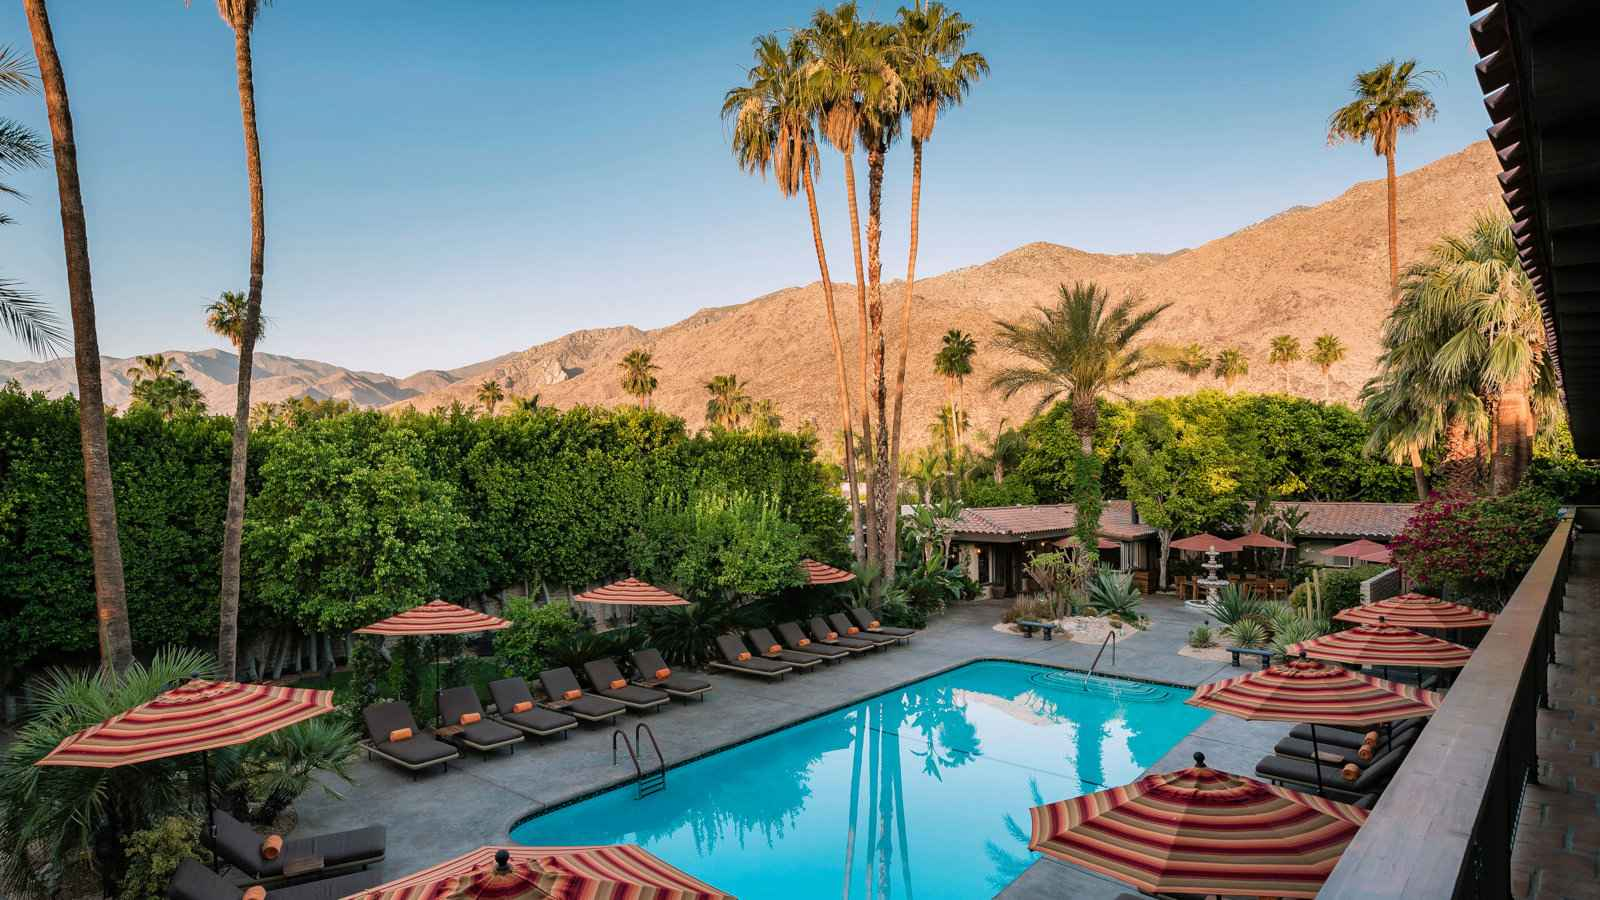 Santiago Resort is a gorgeous and luxurious resort for gay men in Palm Springs